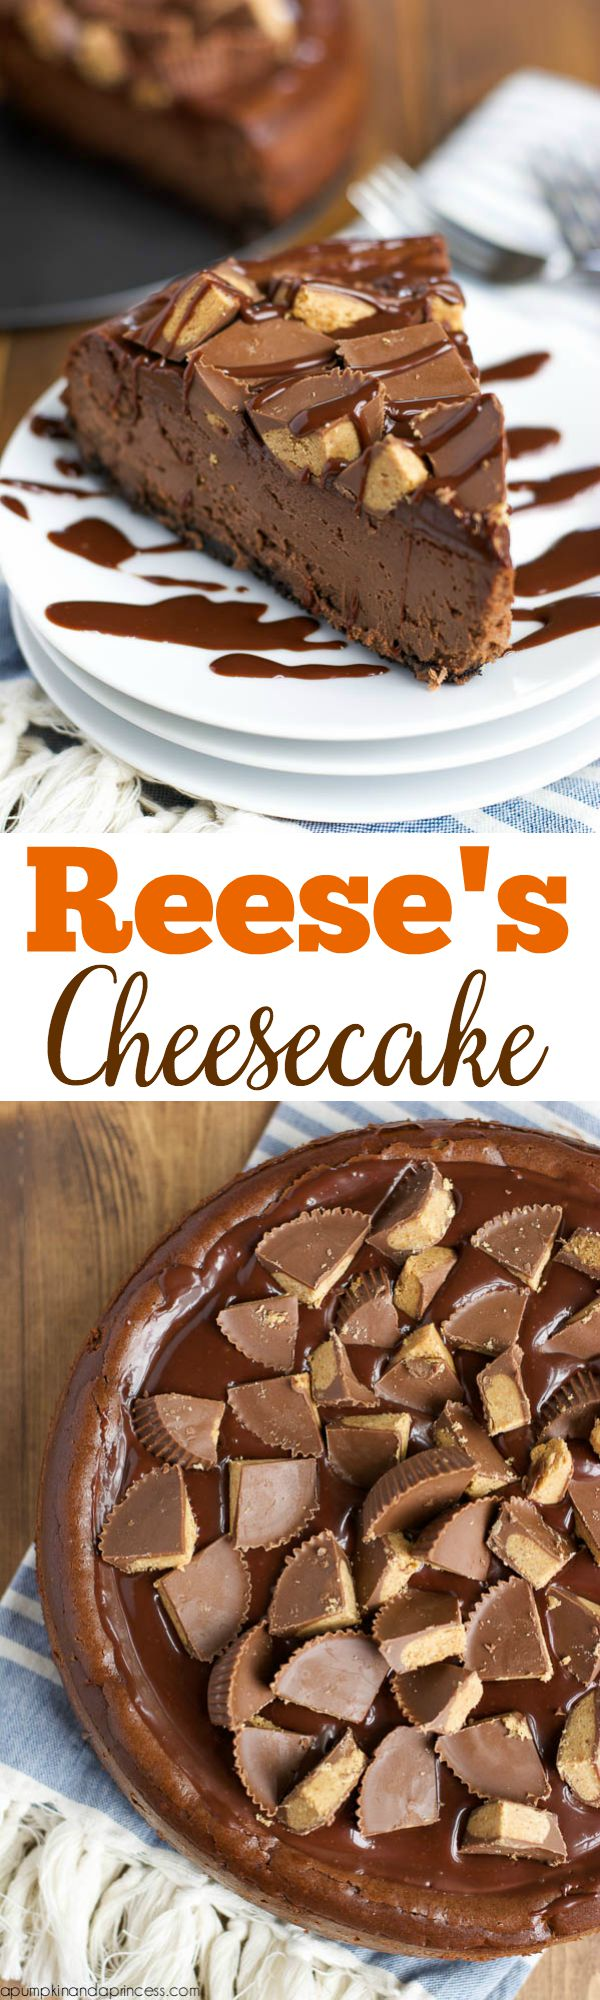 Reese's Chocolate Cheesecake